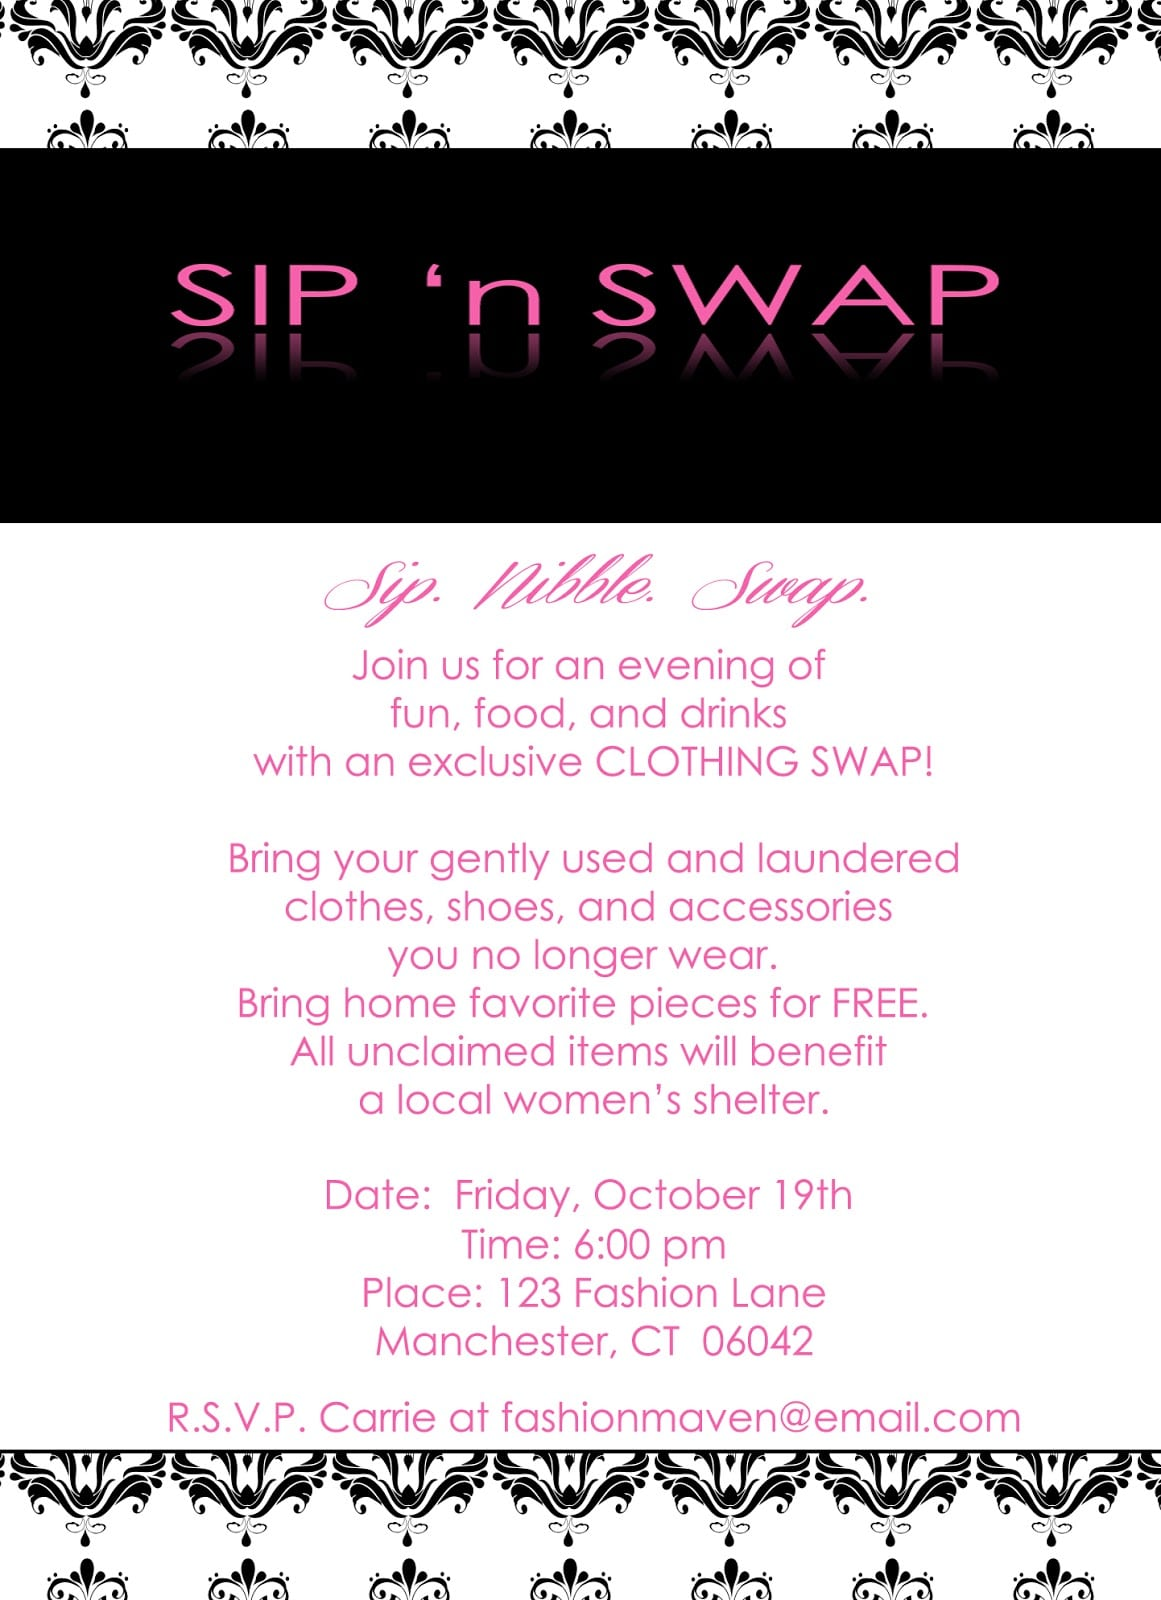 Sip 'n Swap Party Collection  Invitation